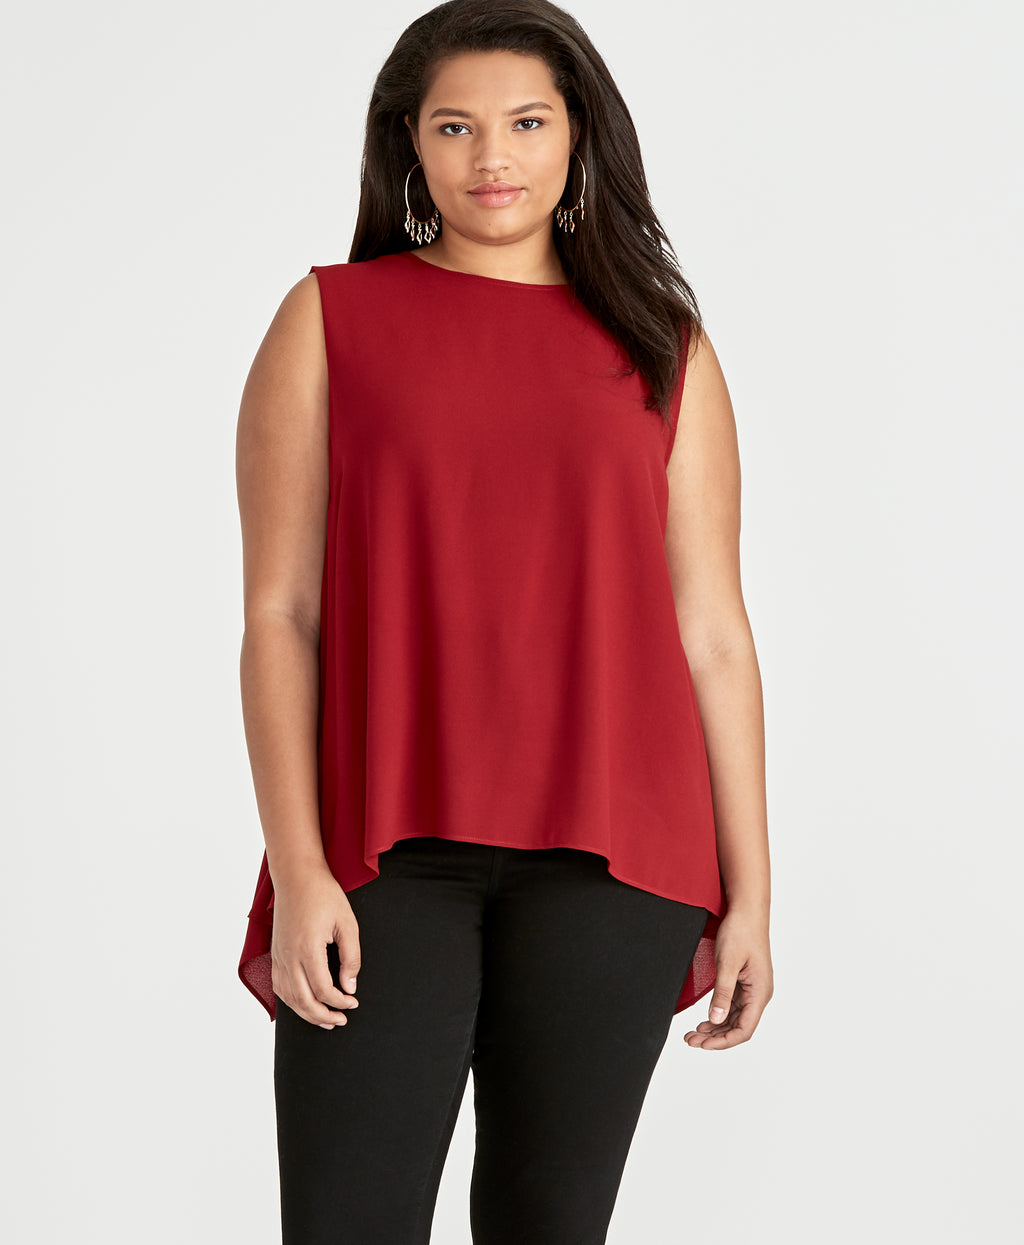 Raeni Top | Black Cherry